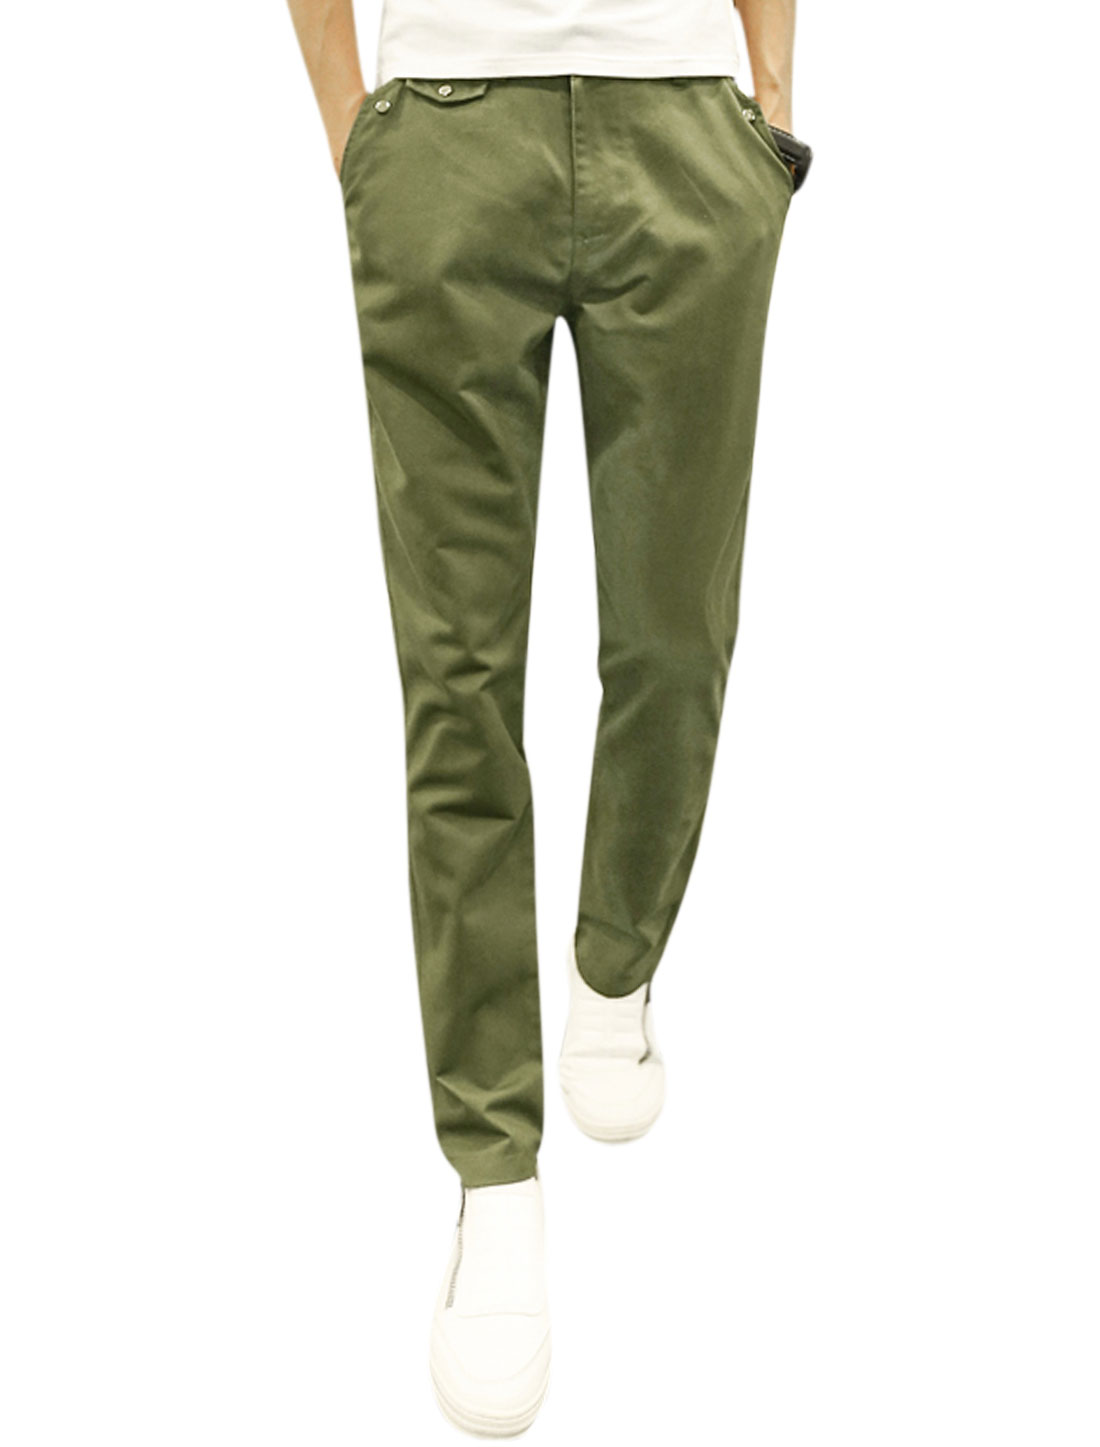 Men Four Pockets Belt Loops Button Closed Zip Fly Tapered Trousers Green W30